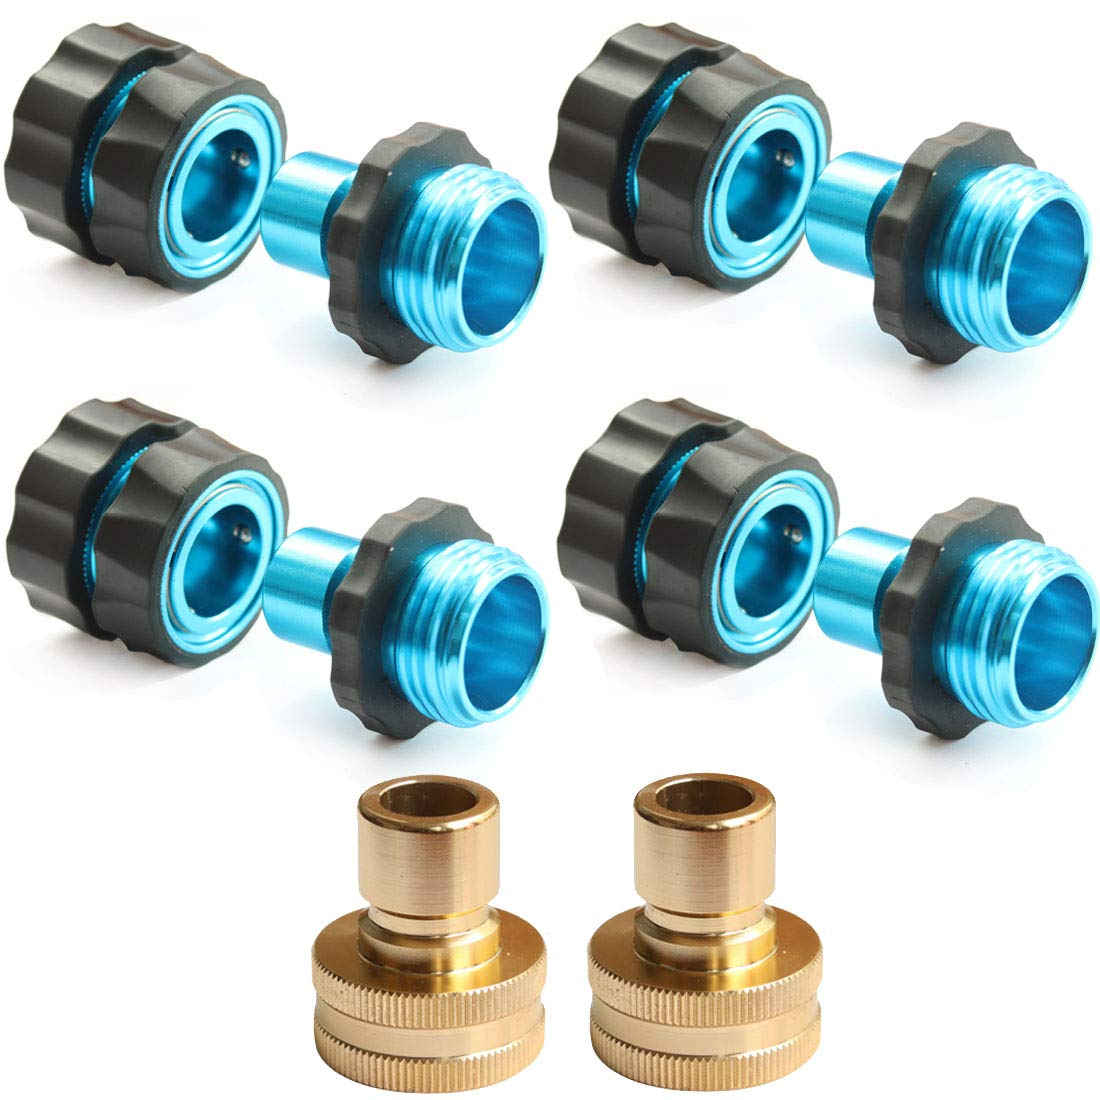 PLG Garden Hose Connectors,4 Male+4 Female+2 Fittings